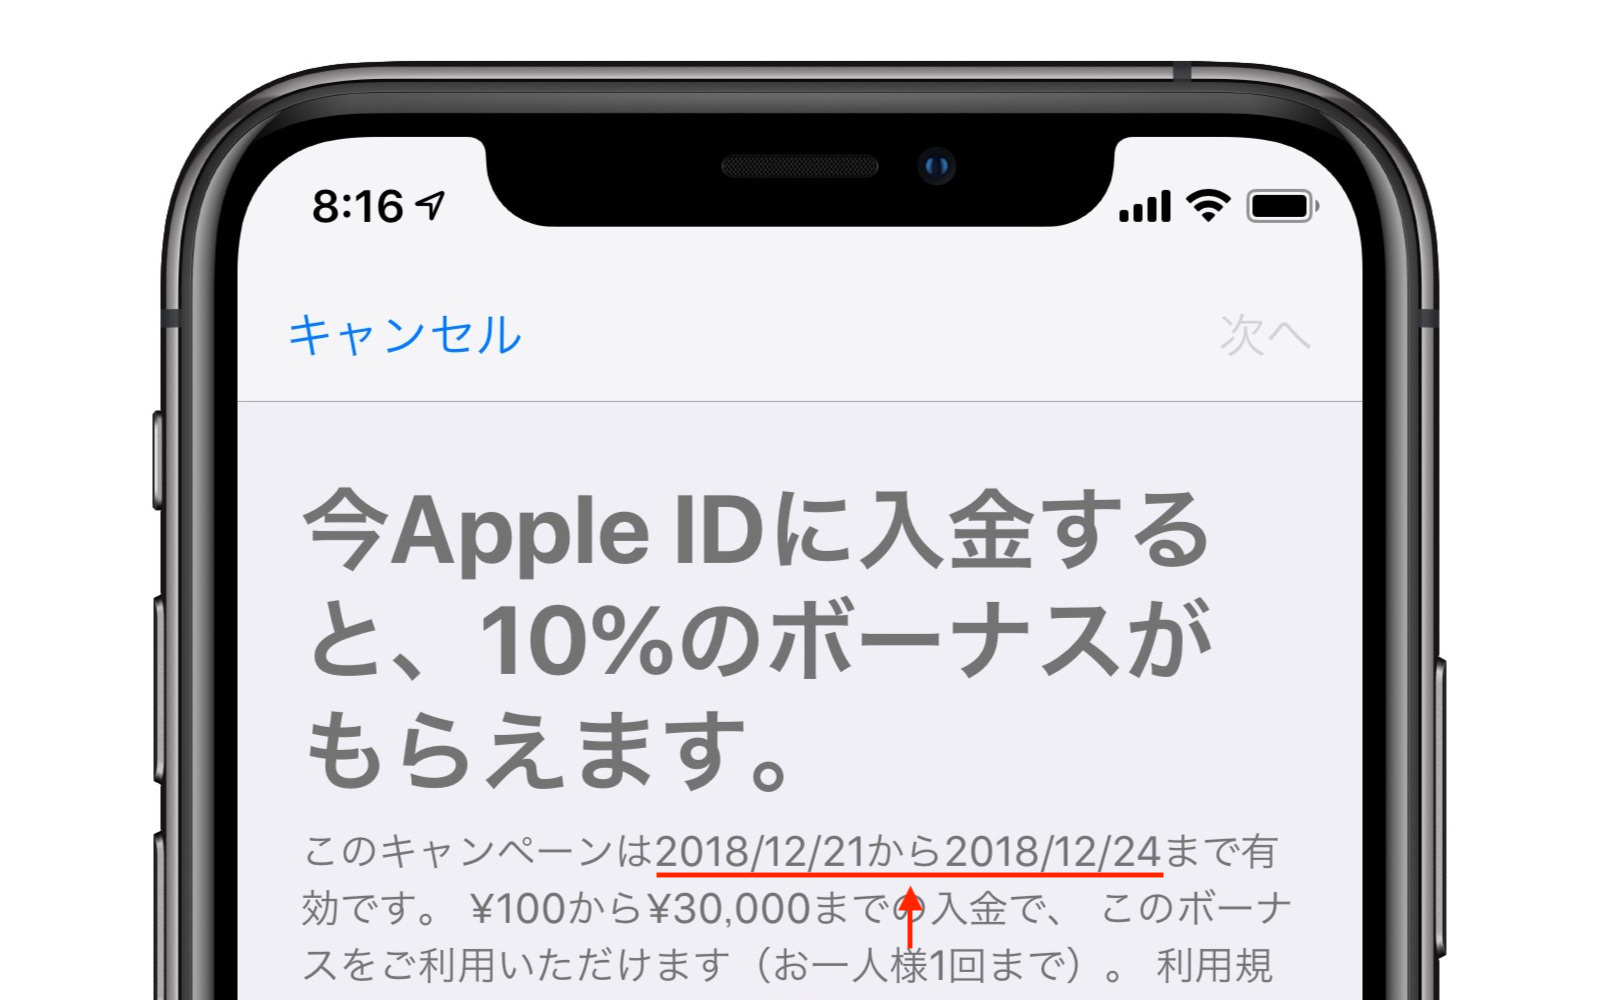 Apple ID Charge until 24th